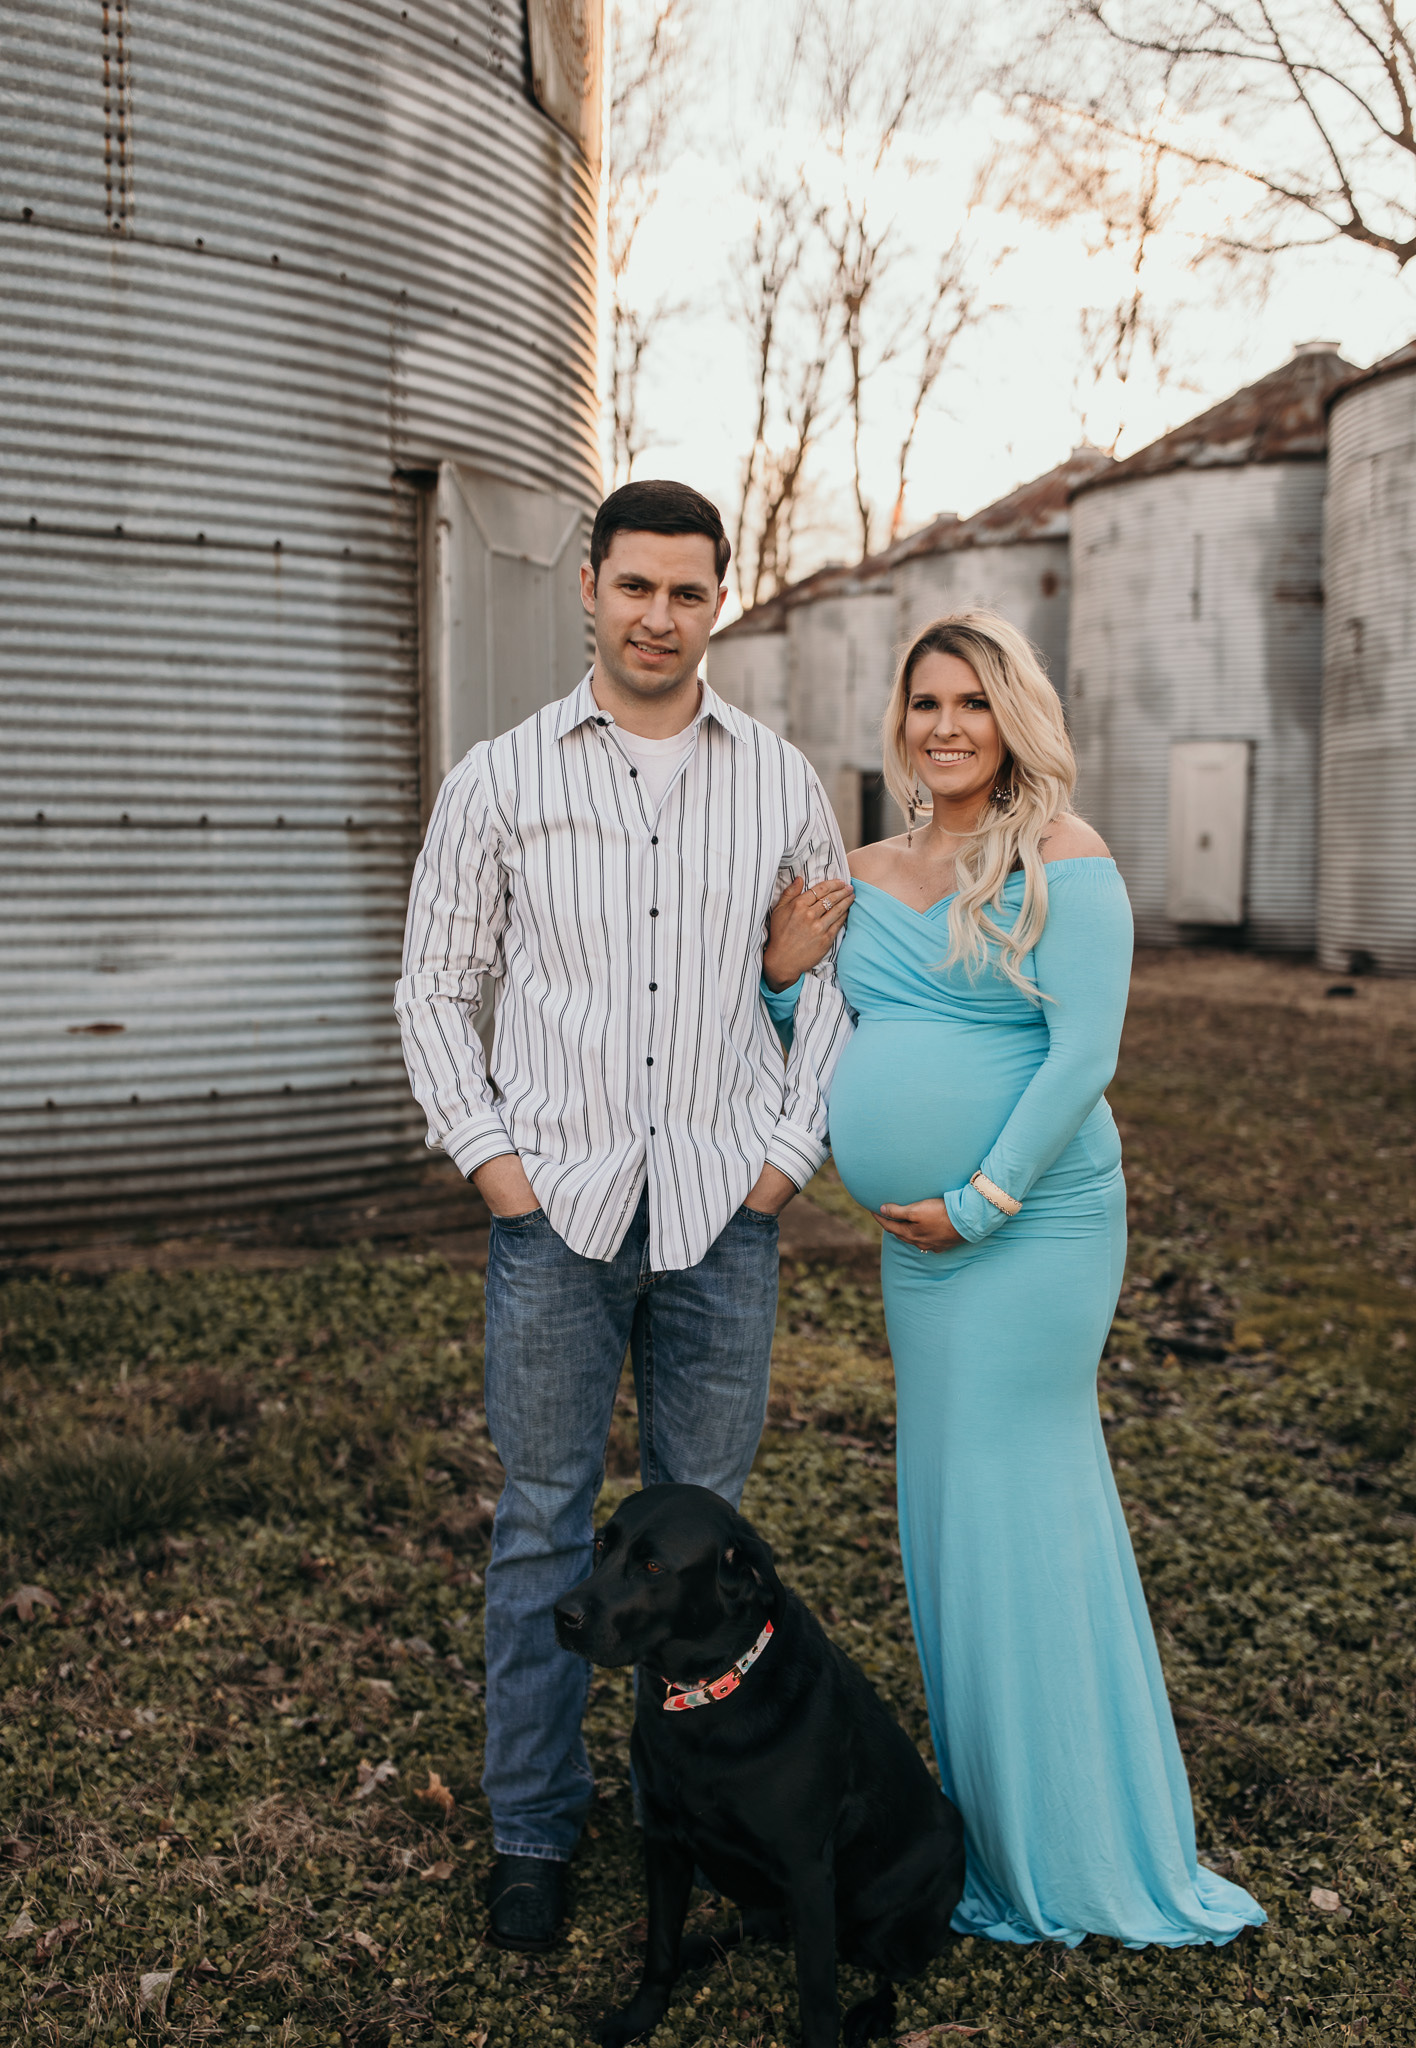 Maternity family photo with pup